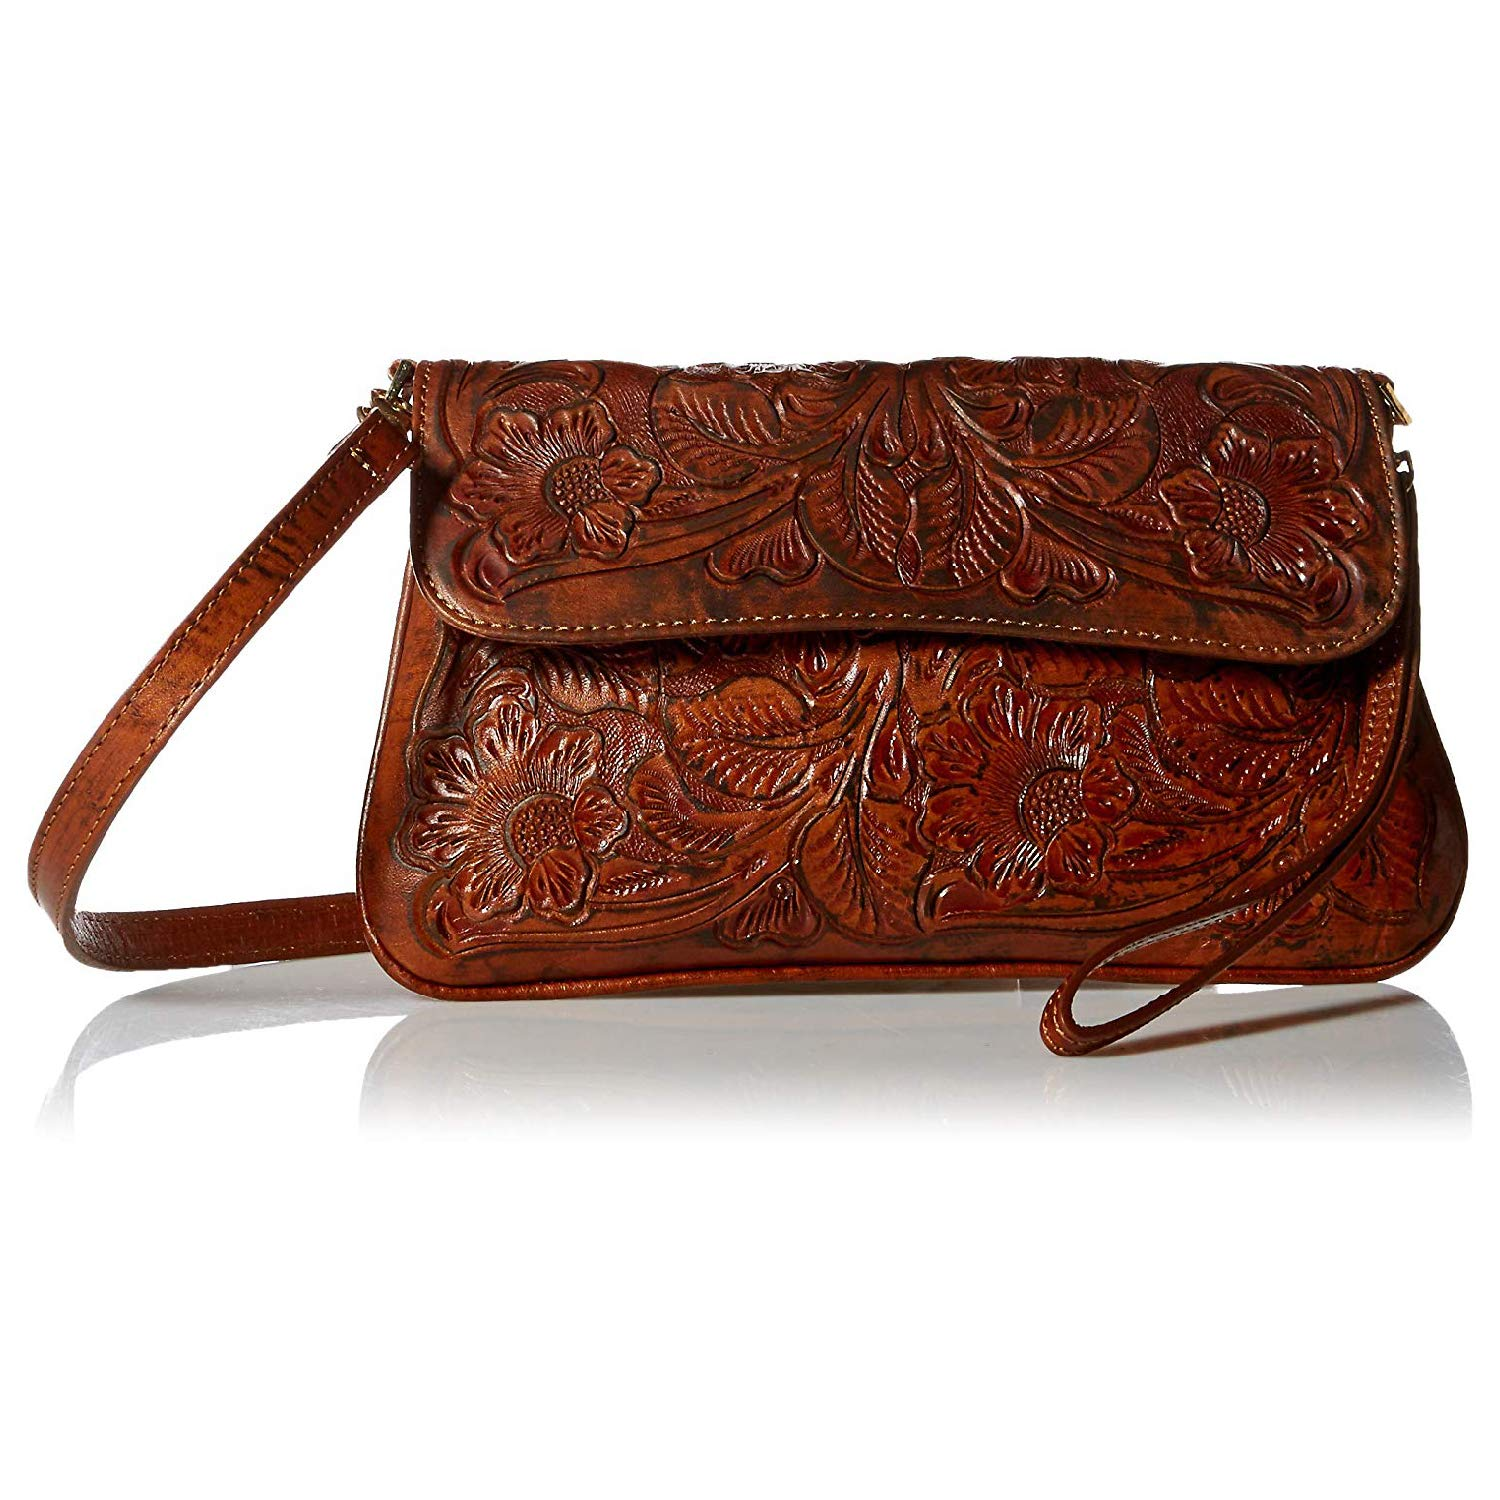 Edwardian Gloves, Handbags, Hair Combs, Wigs Mauzari Womens Genuine Leather Crossbody Purse with Removable Straps — Artisan Crafted $124.95 AT vintagedancer.com